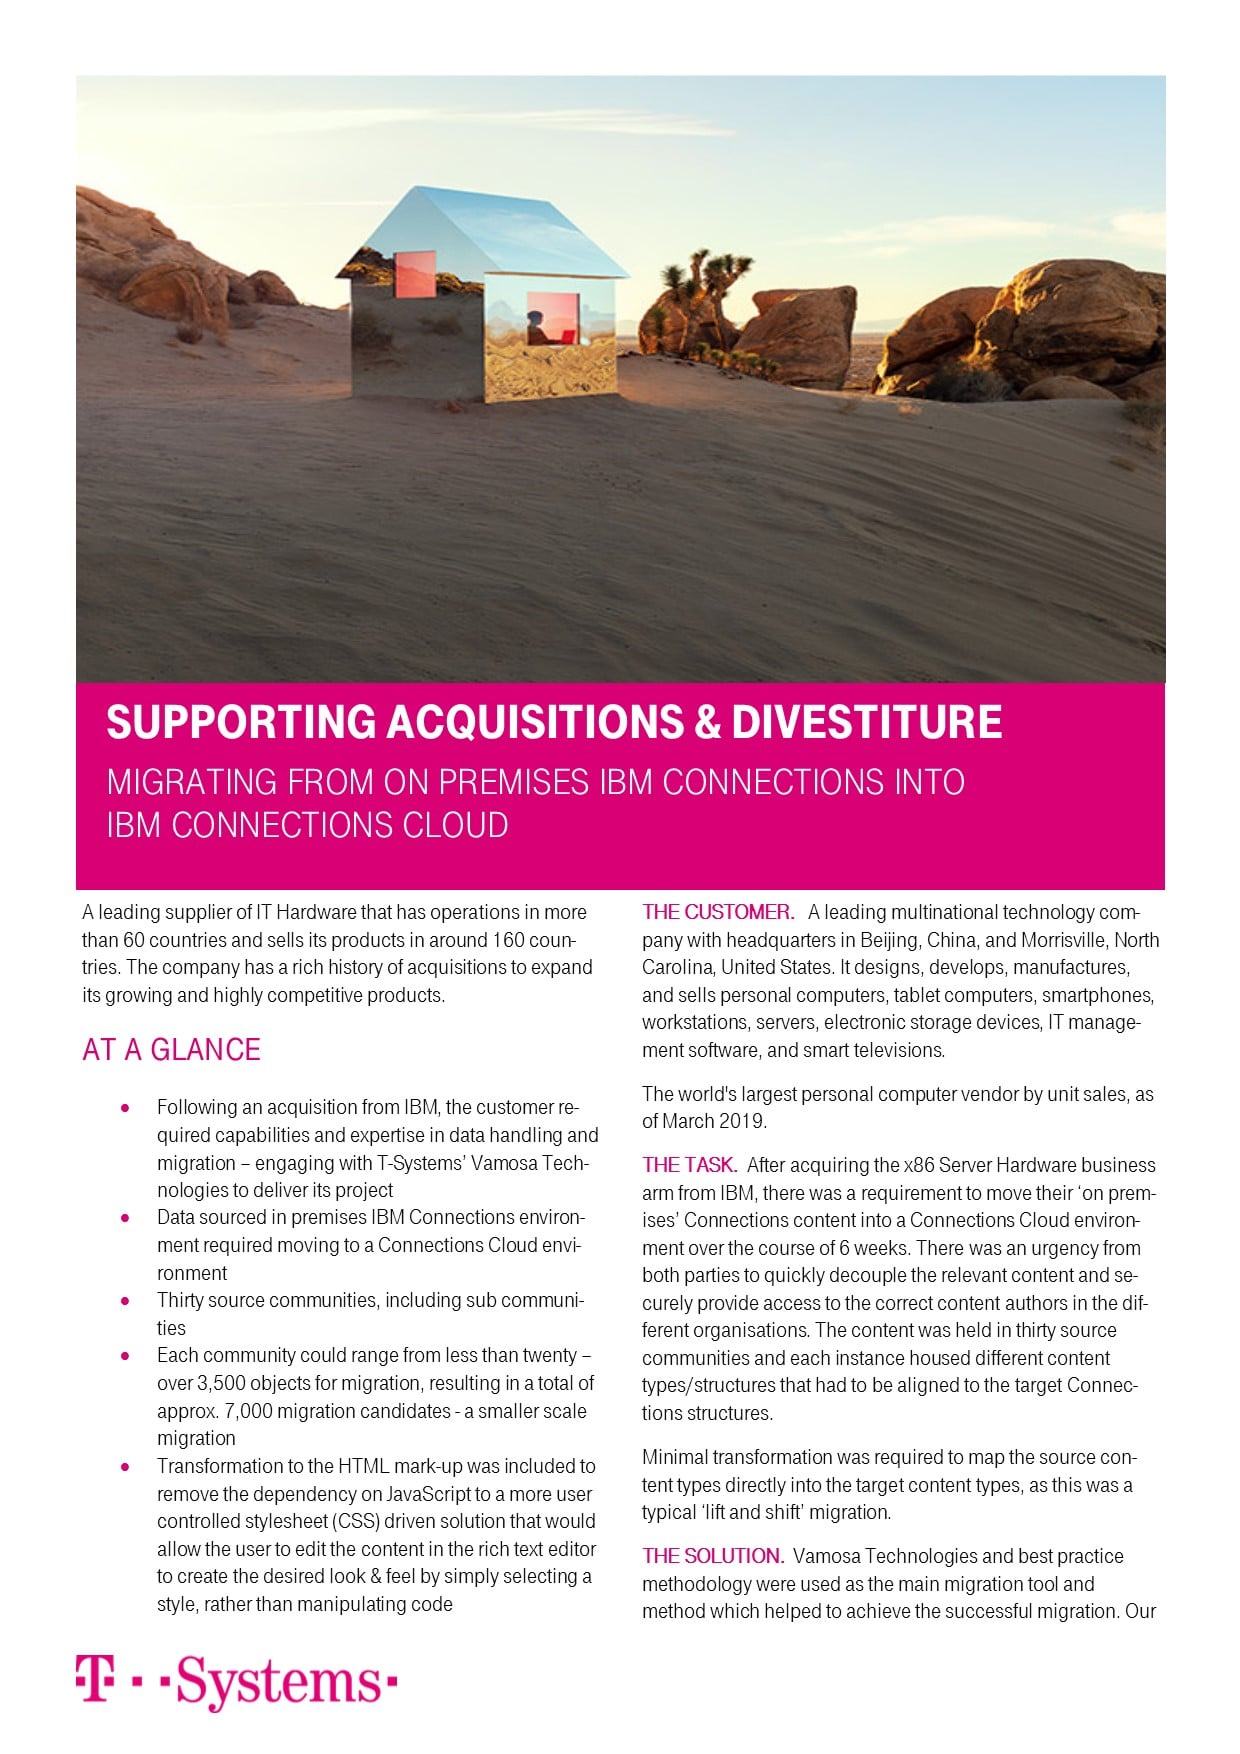 Case Study: Supporting Acquisitions and Divestitures